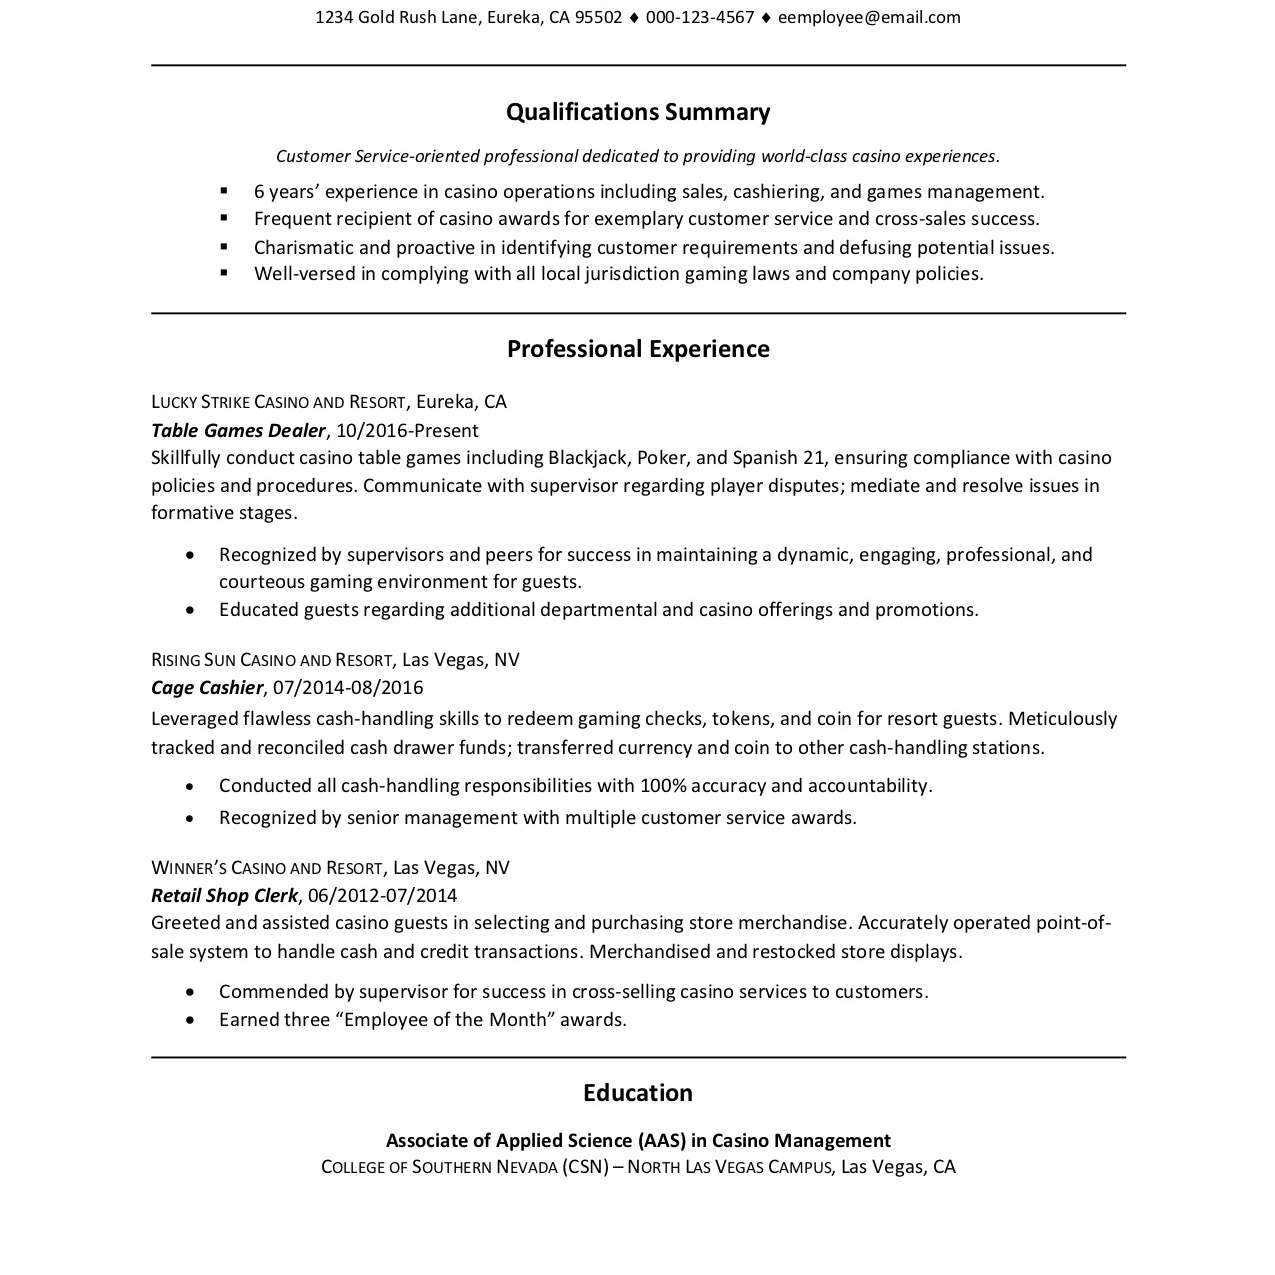 33 resume for one job for many years background